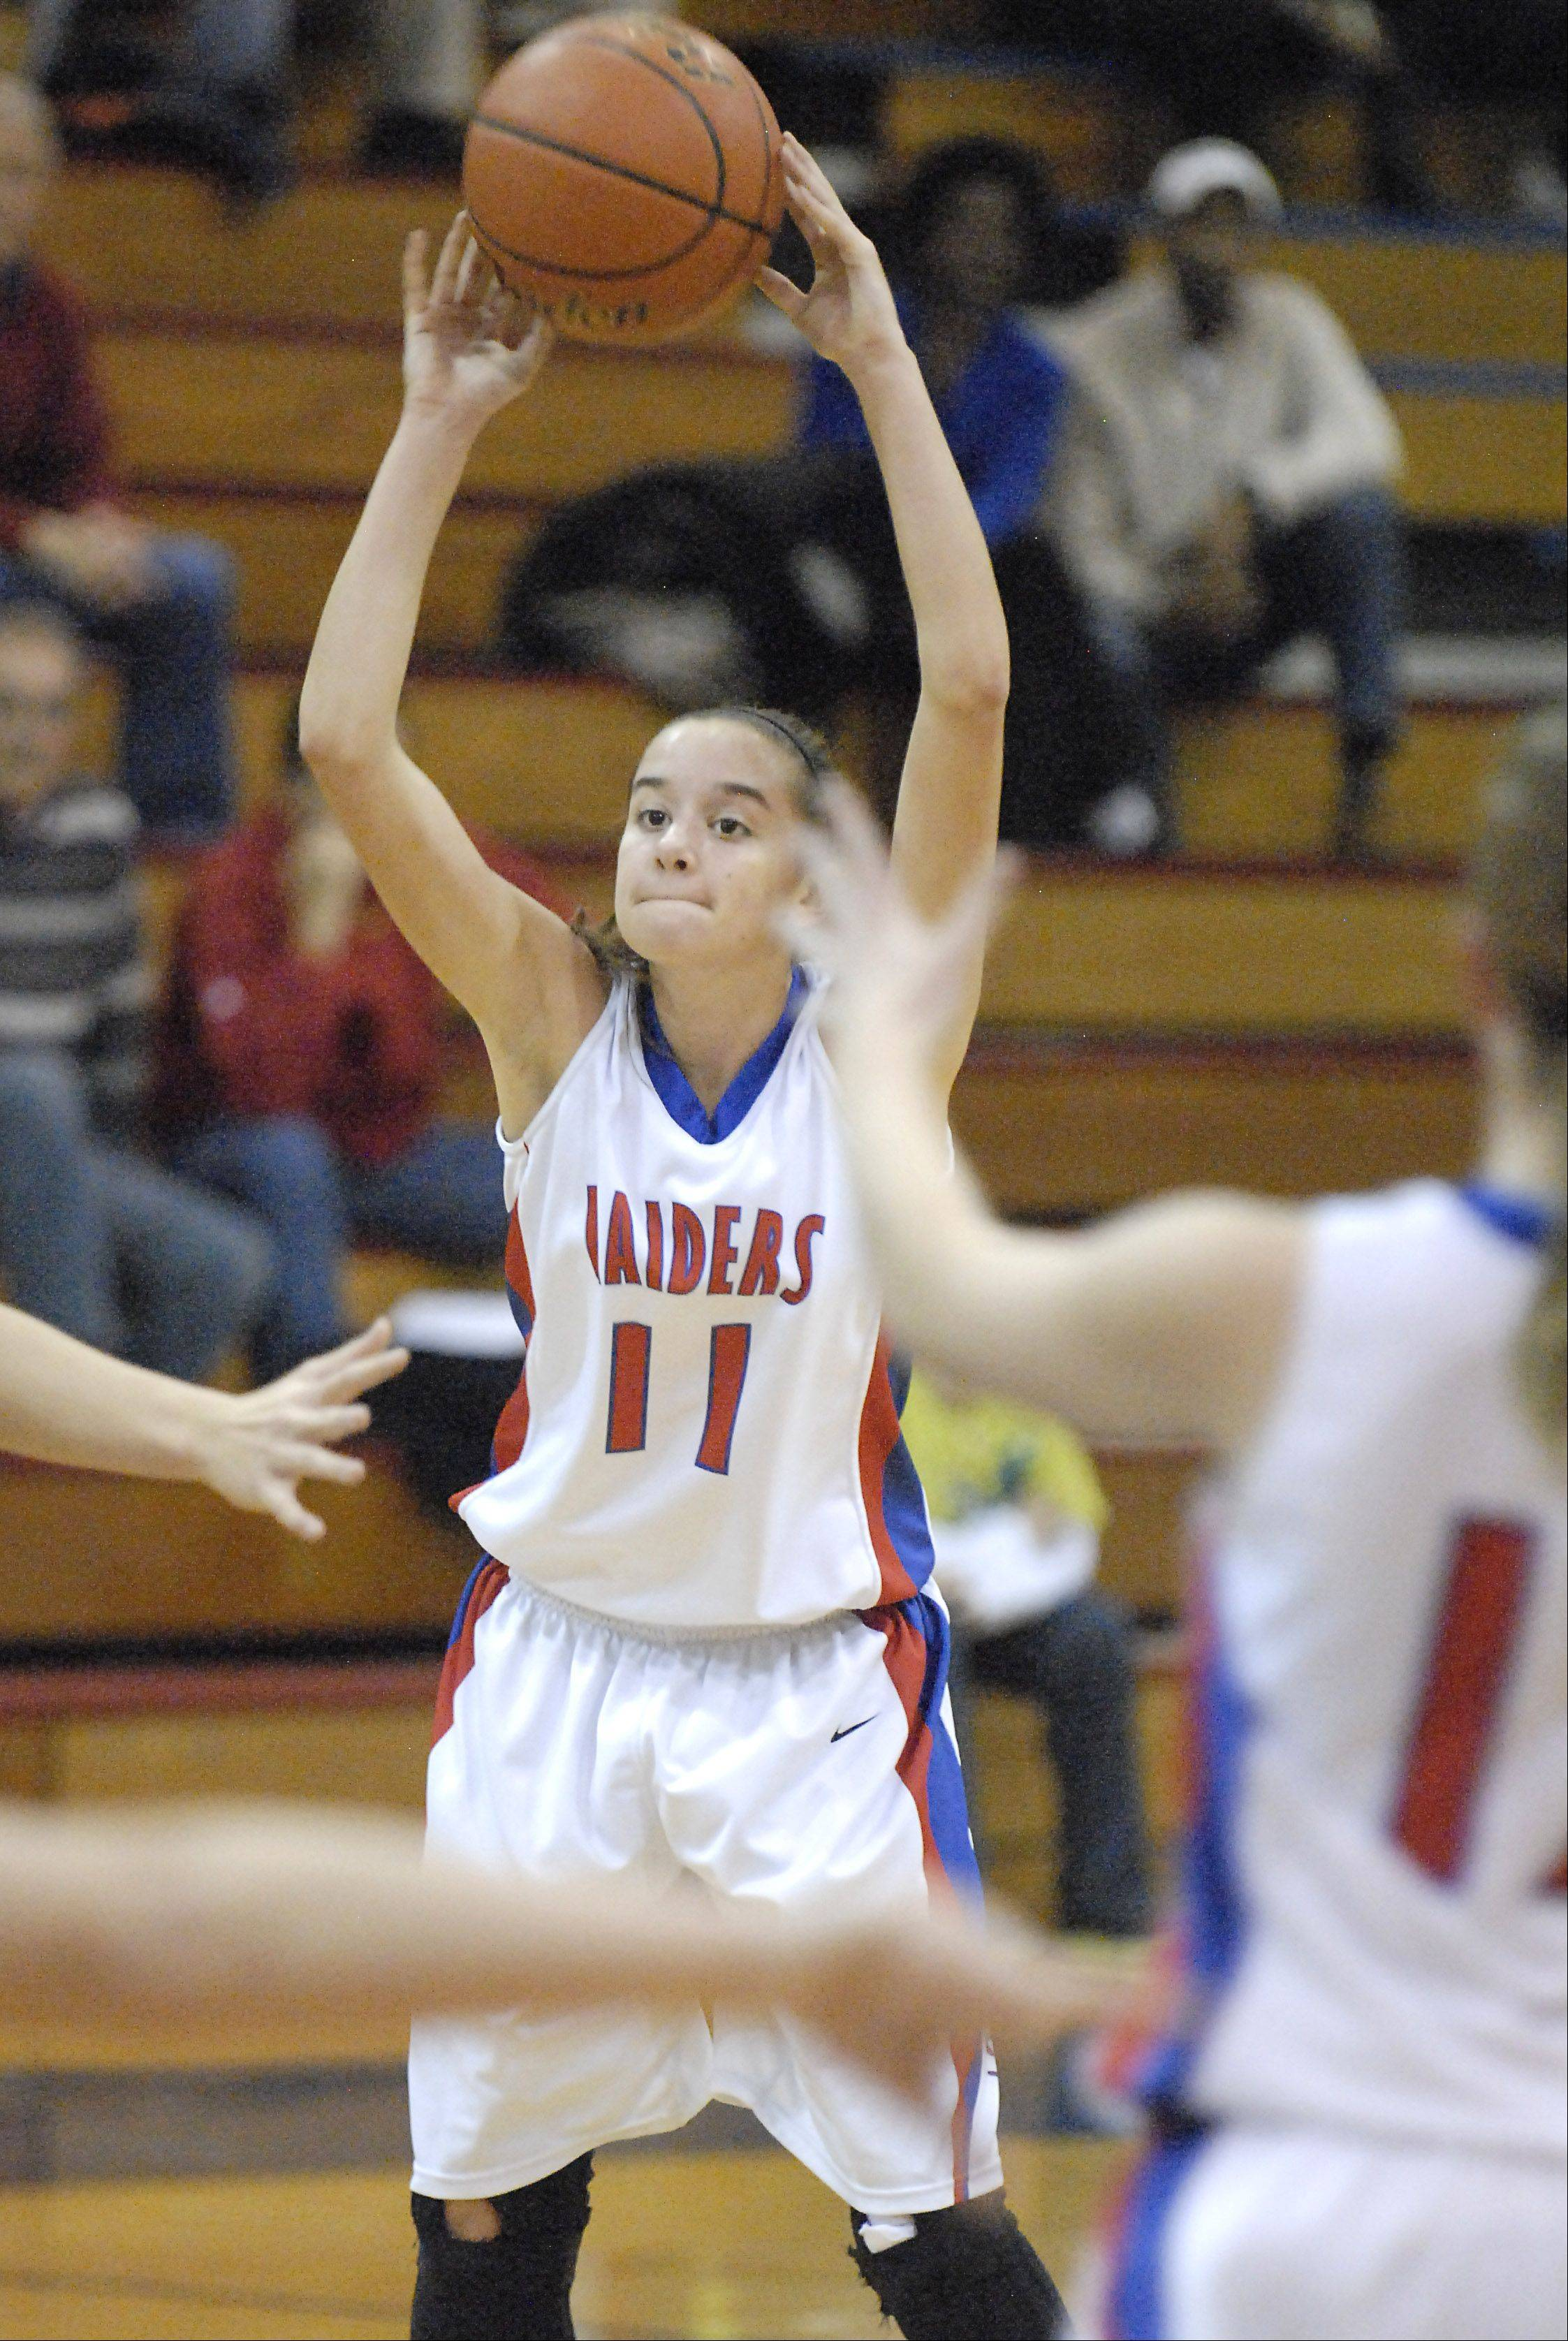 Glenbard South's Jenna Brambora looks to pass in the second quarter on Tuesday, November 13.